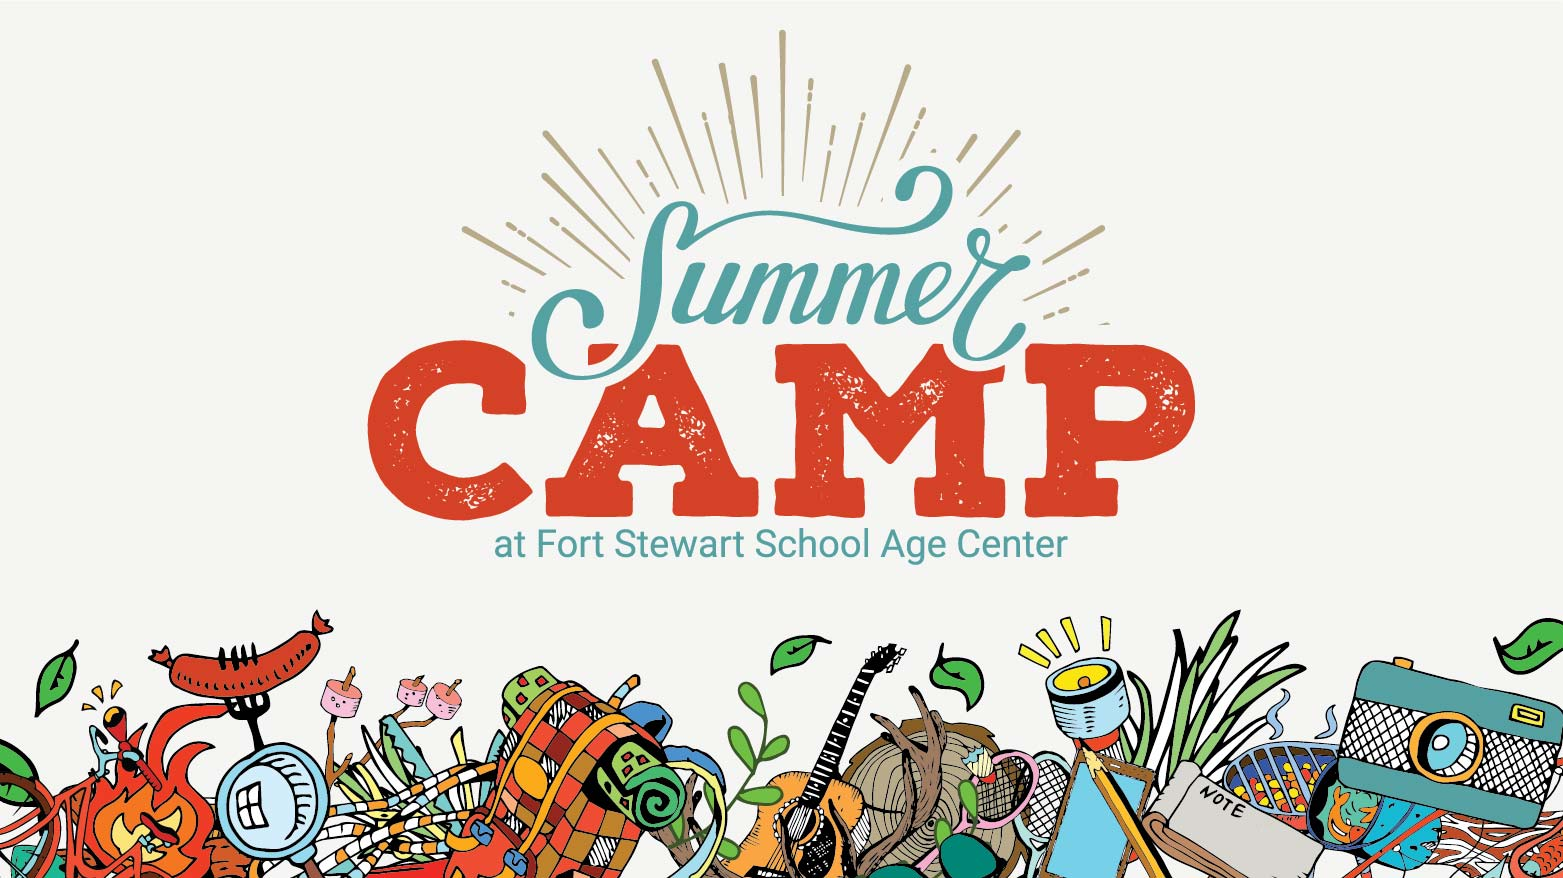 School Age Center Summer Camp 2020 (HAAF)